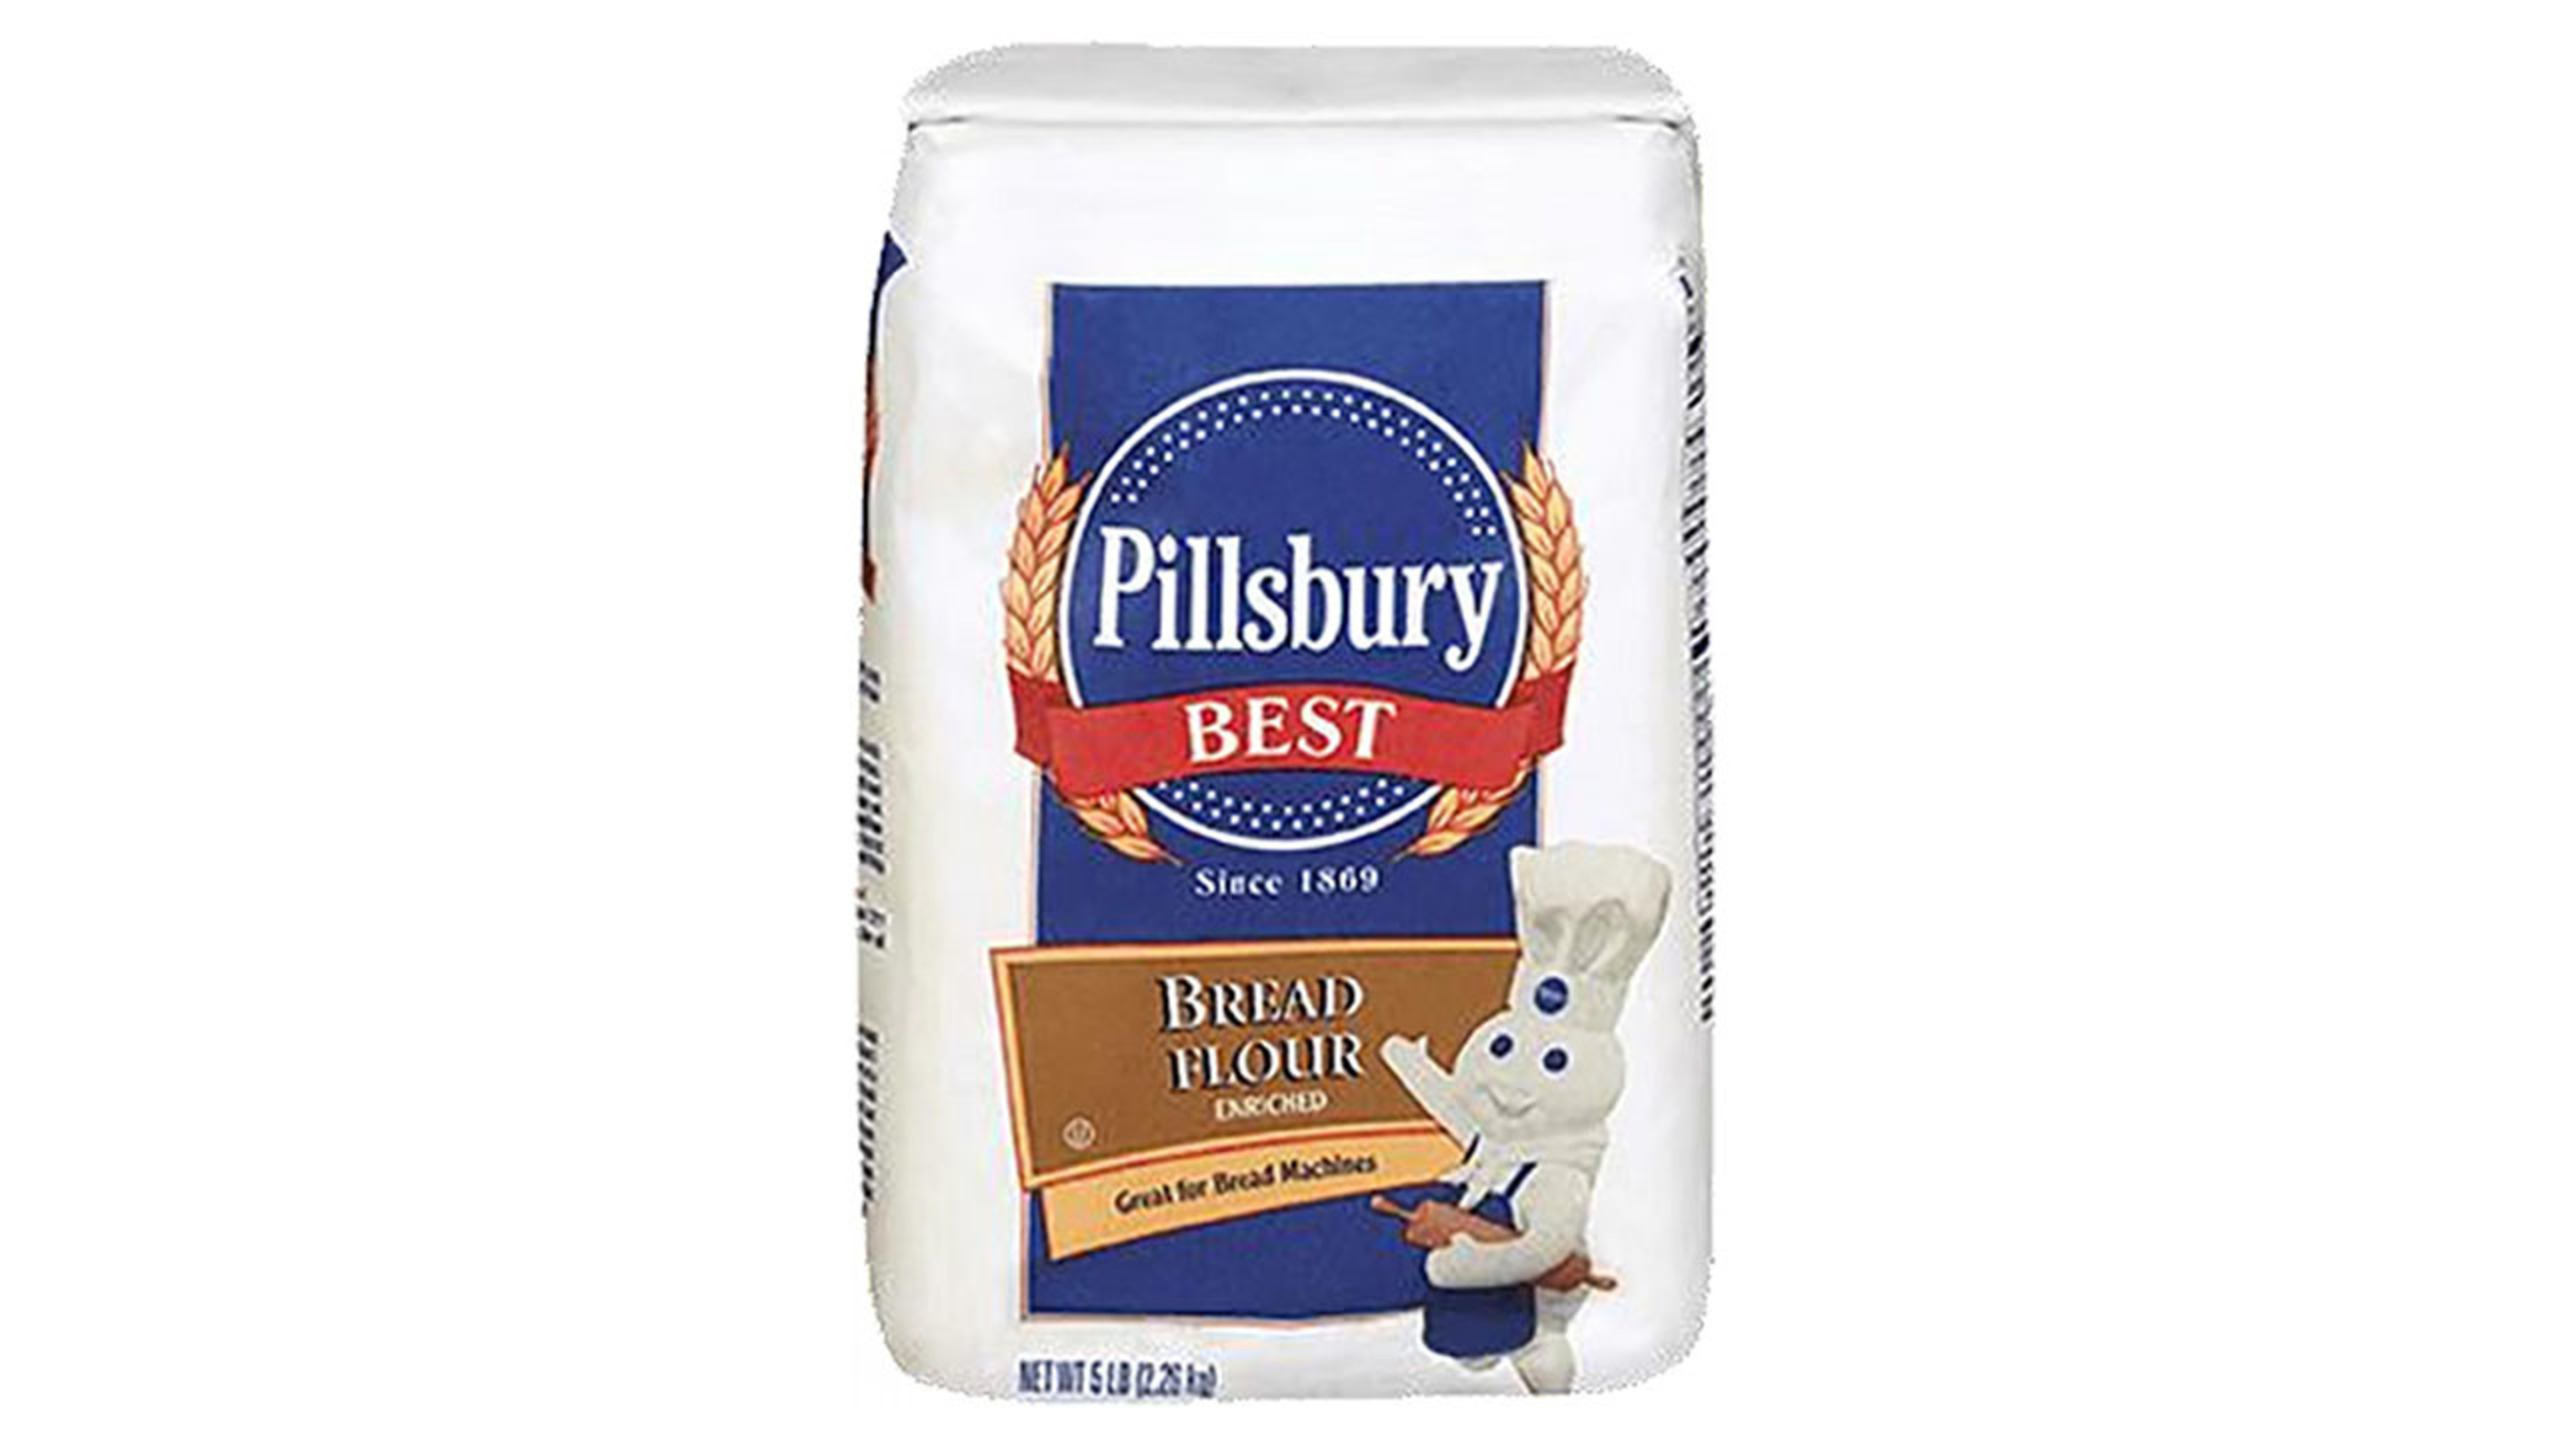 Pillsbury recalls over 4,000 cases of flour over E. coli concerns